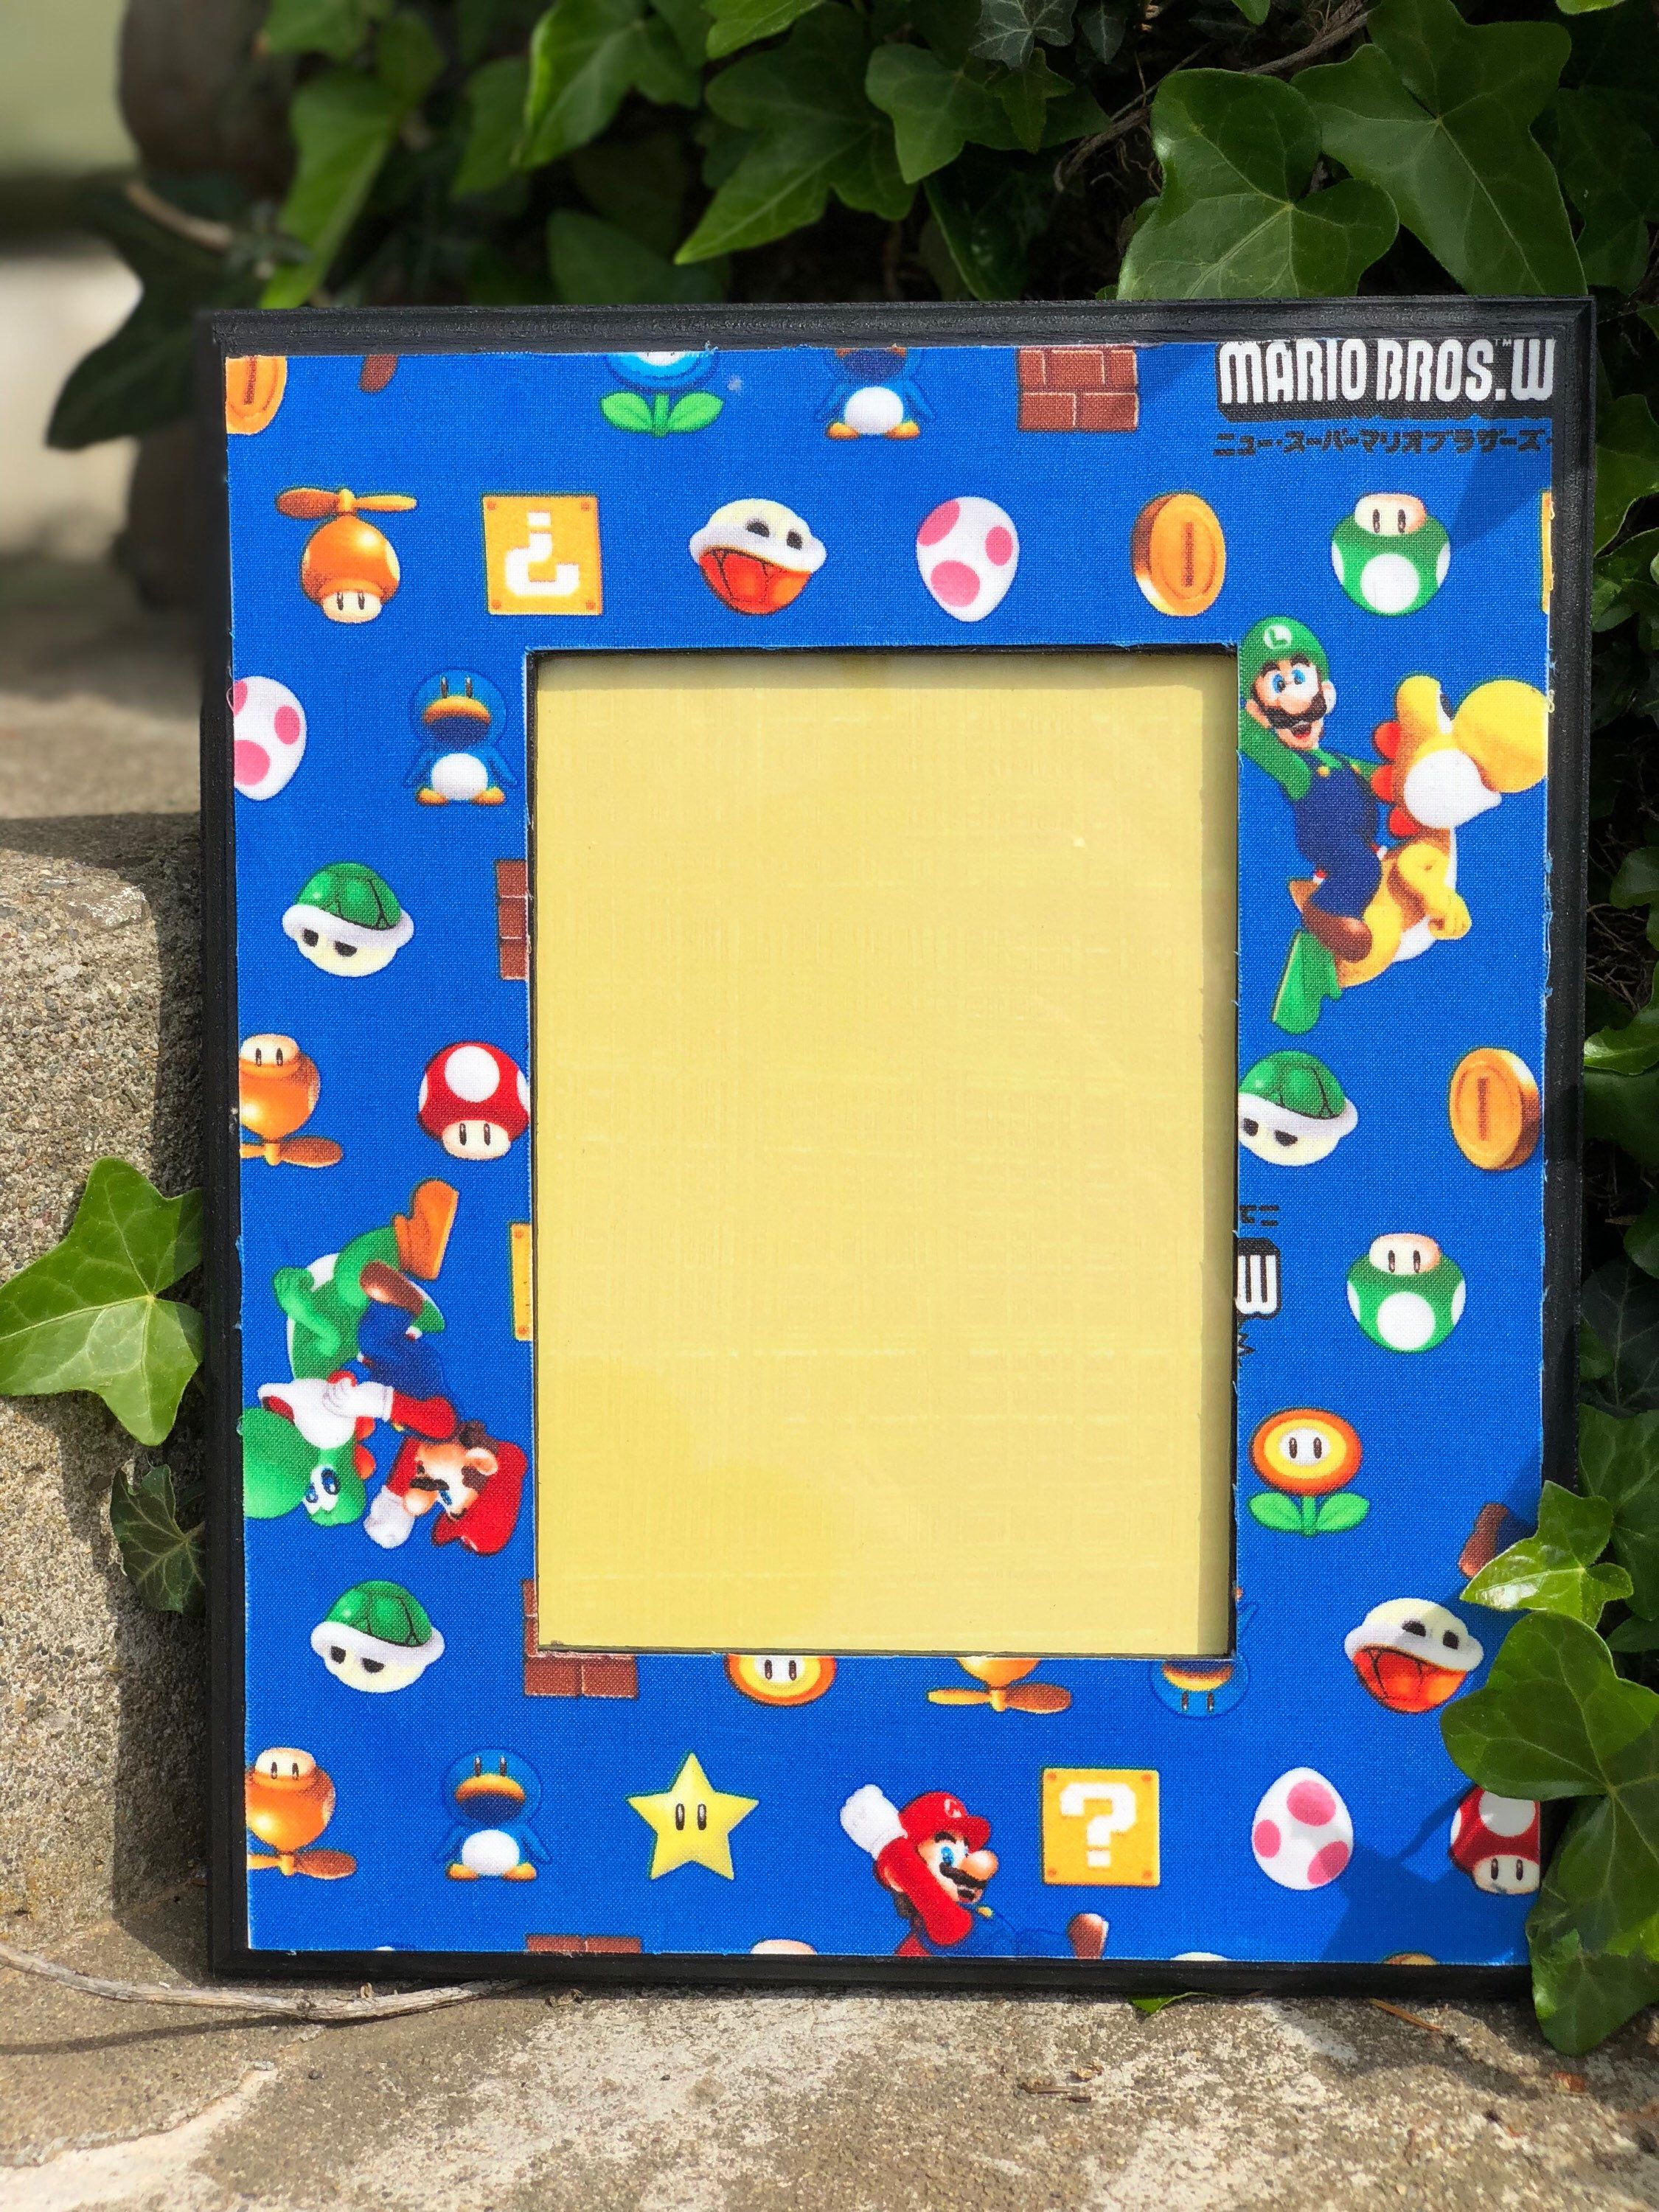 Mario Bros Picture Frame 5x7 Handmade Fabric Wood Frame Home Decor Video Game Frame Mario Fan Nintendo Fan Gam Interior Design Diy Picture Frames Frame